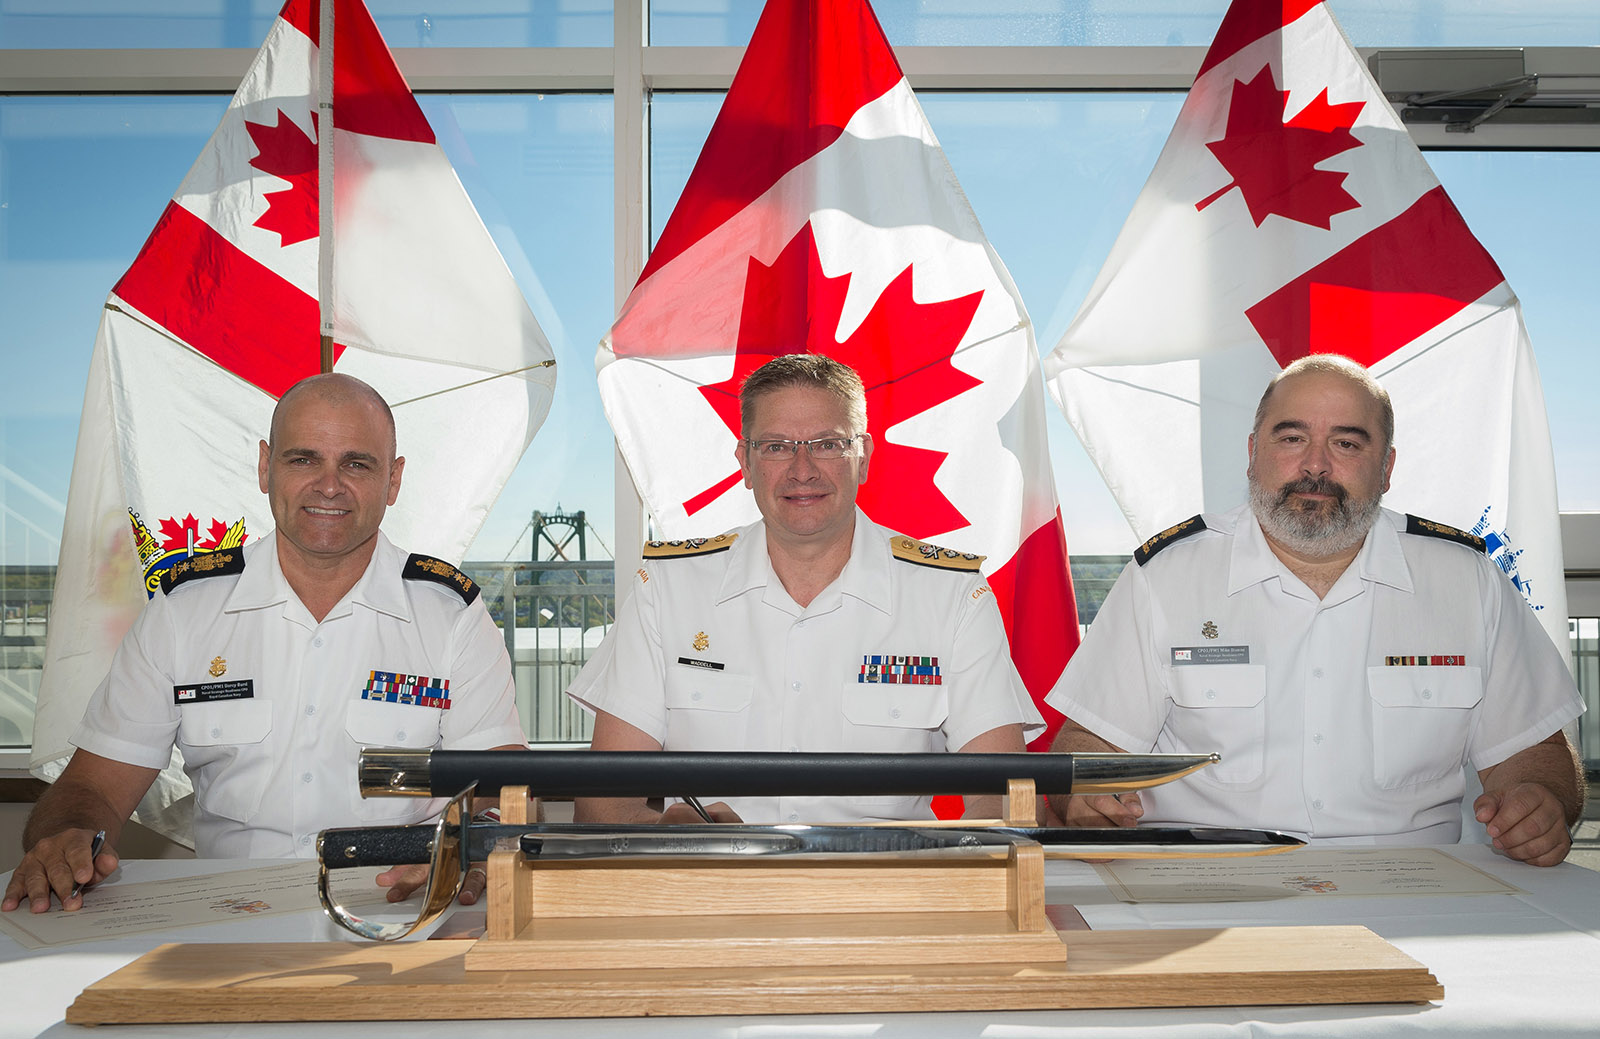 CPO1 Darcy Burd, RAdm Steve Waddell, CPO1 Mike Dionne